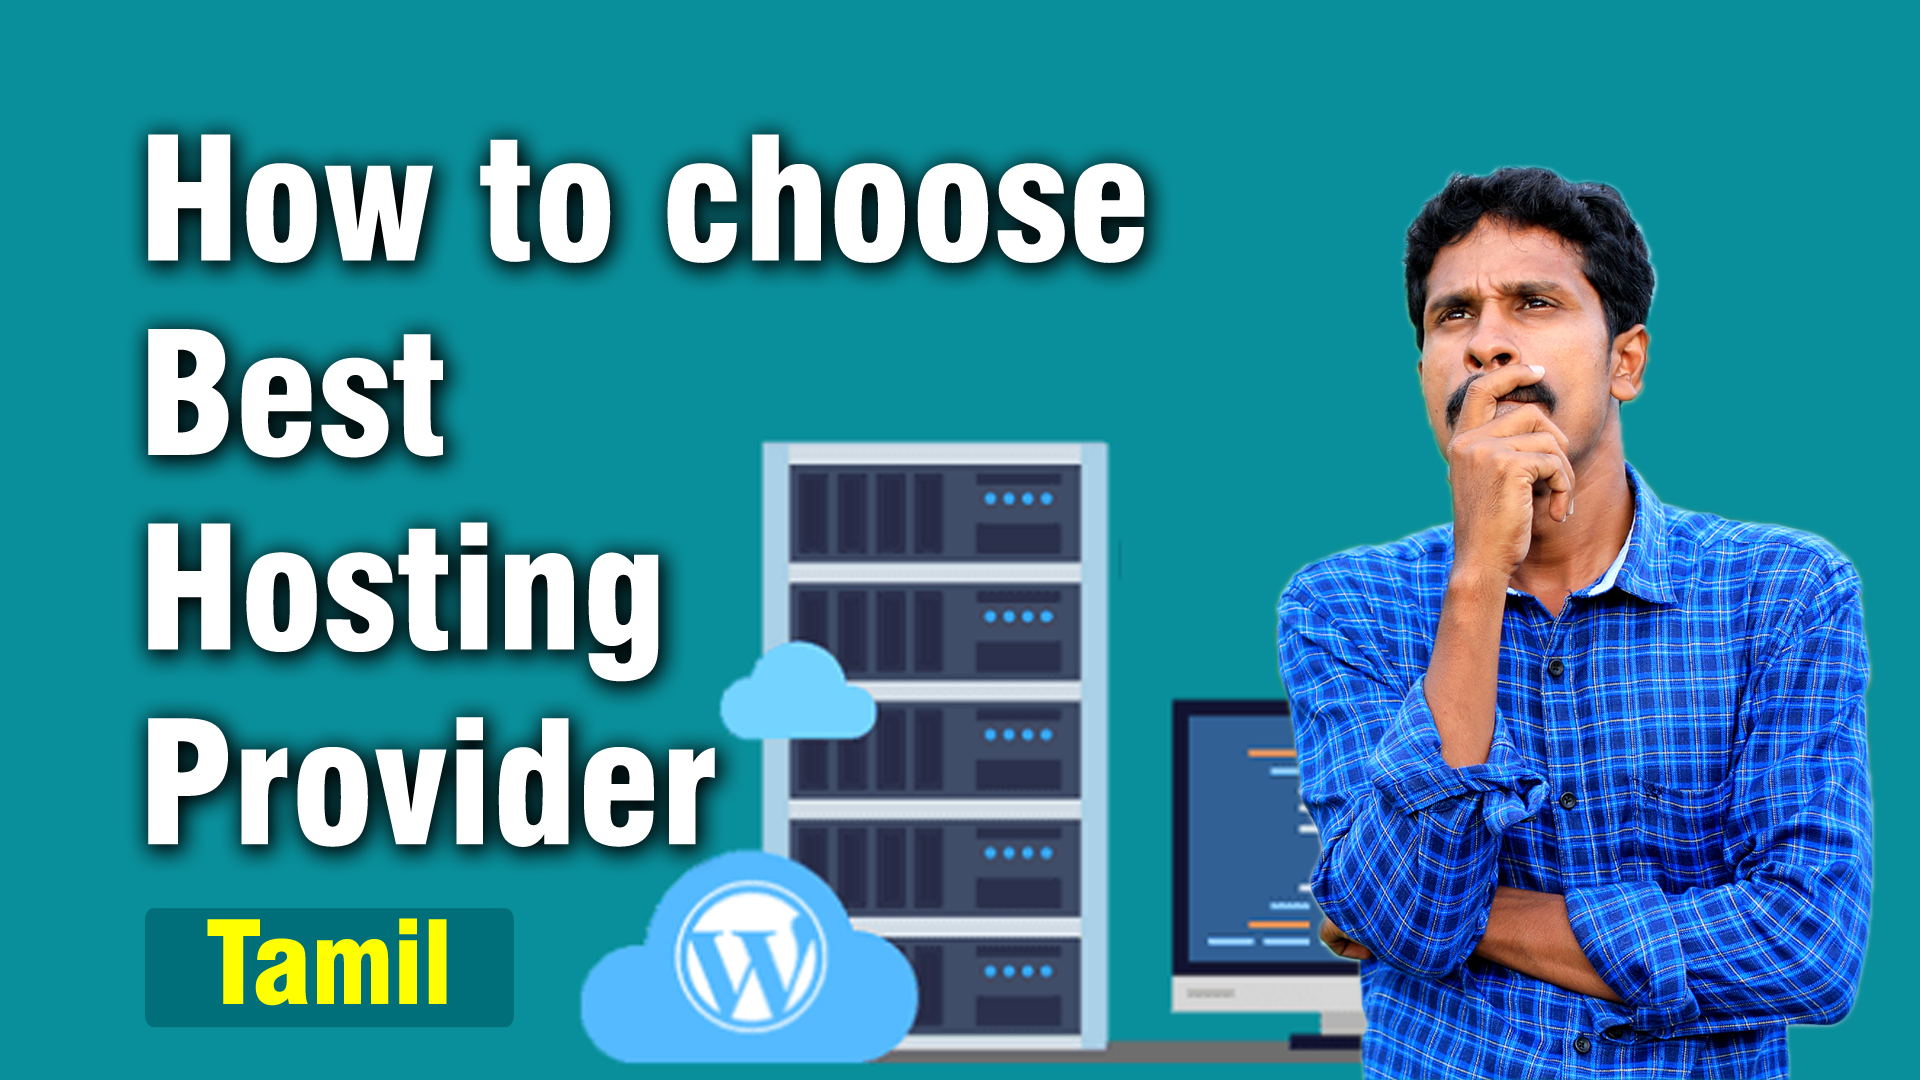 How to choose best Hosting Provider